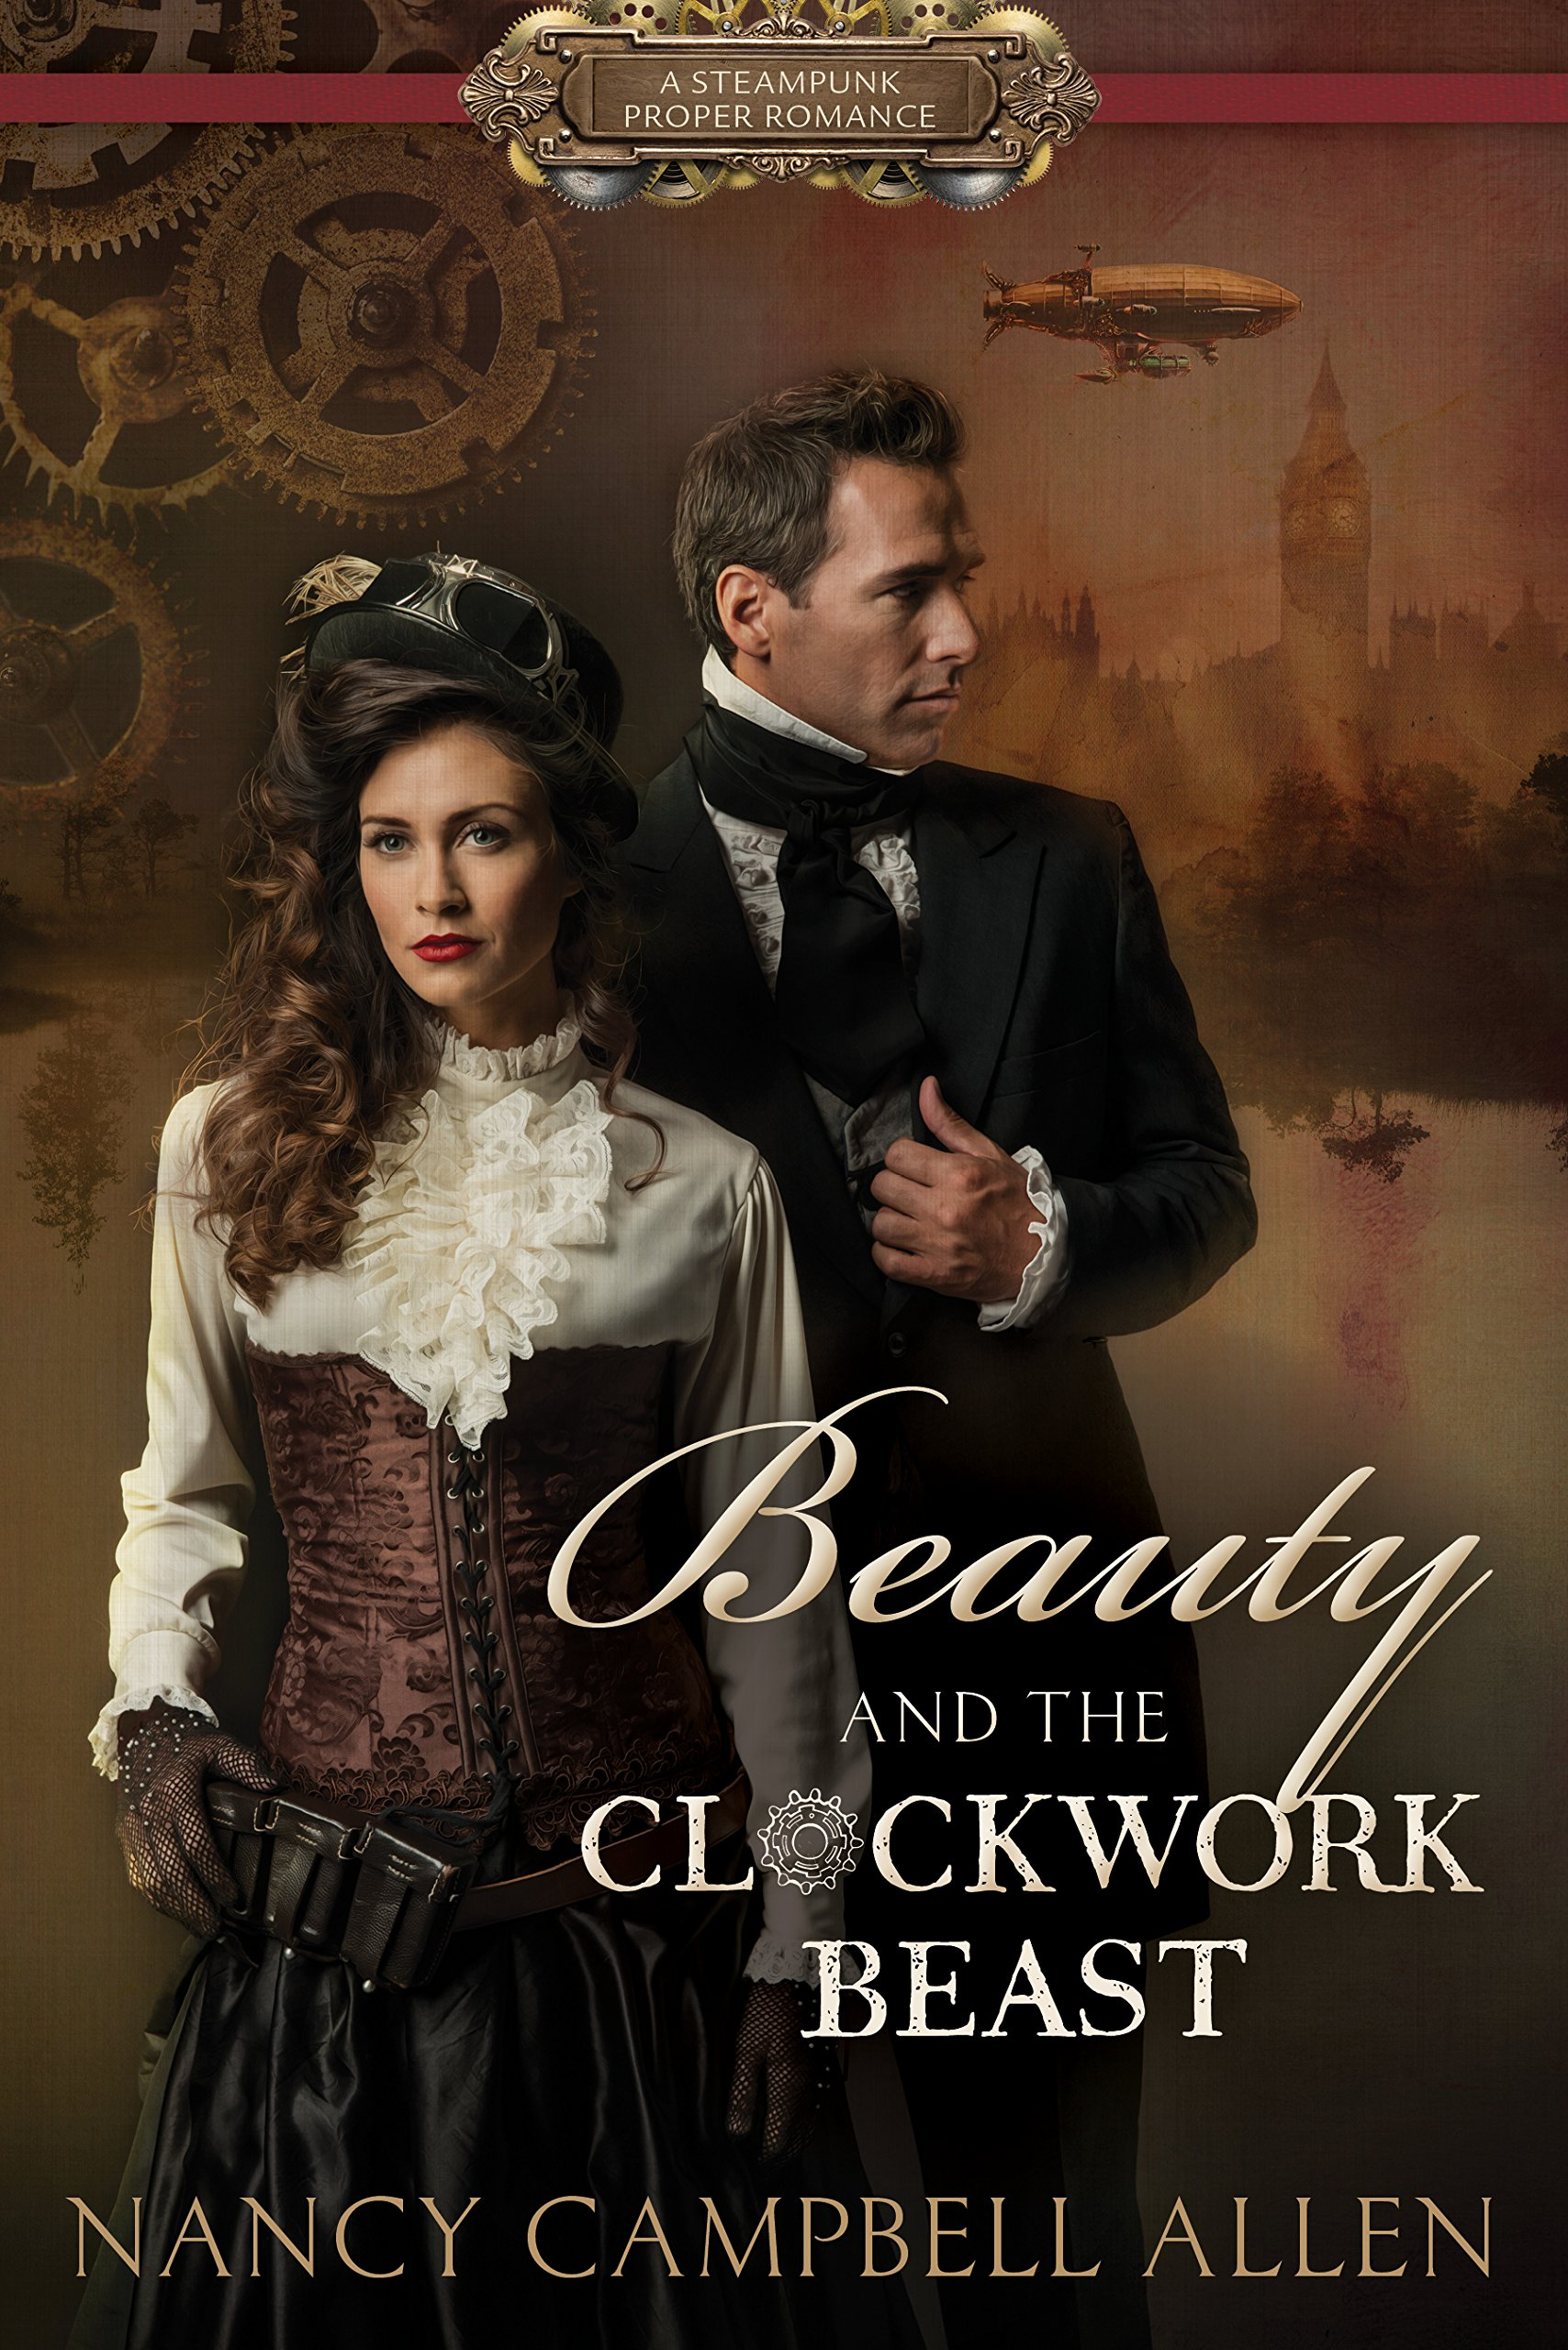 Beauty And The Clockwork Beast Steampunk Proper Romance Nancy